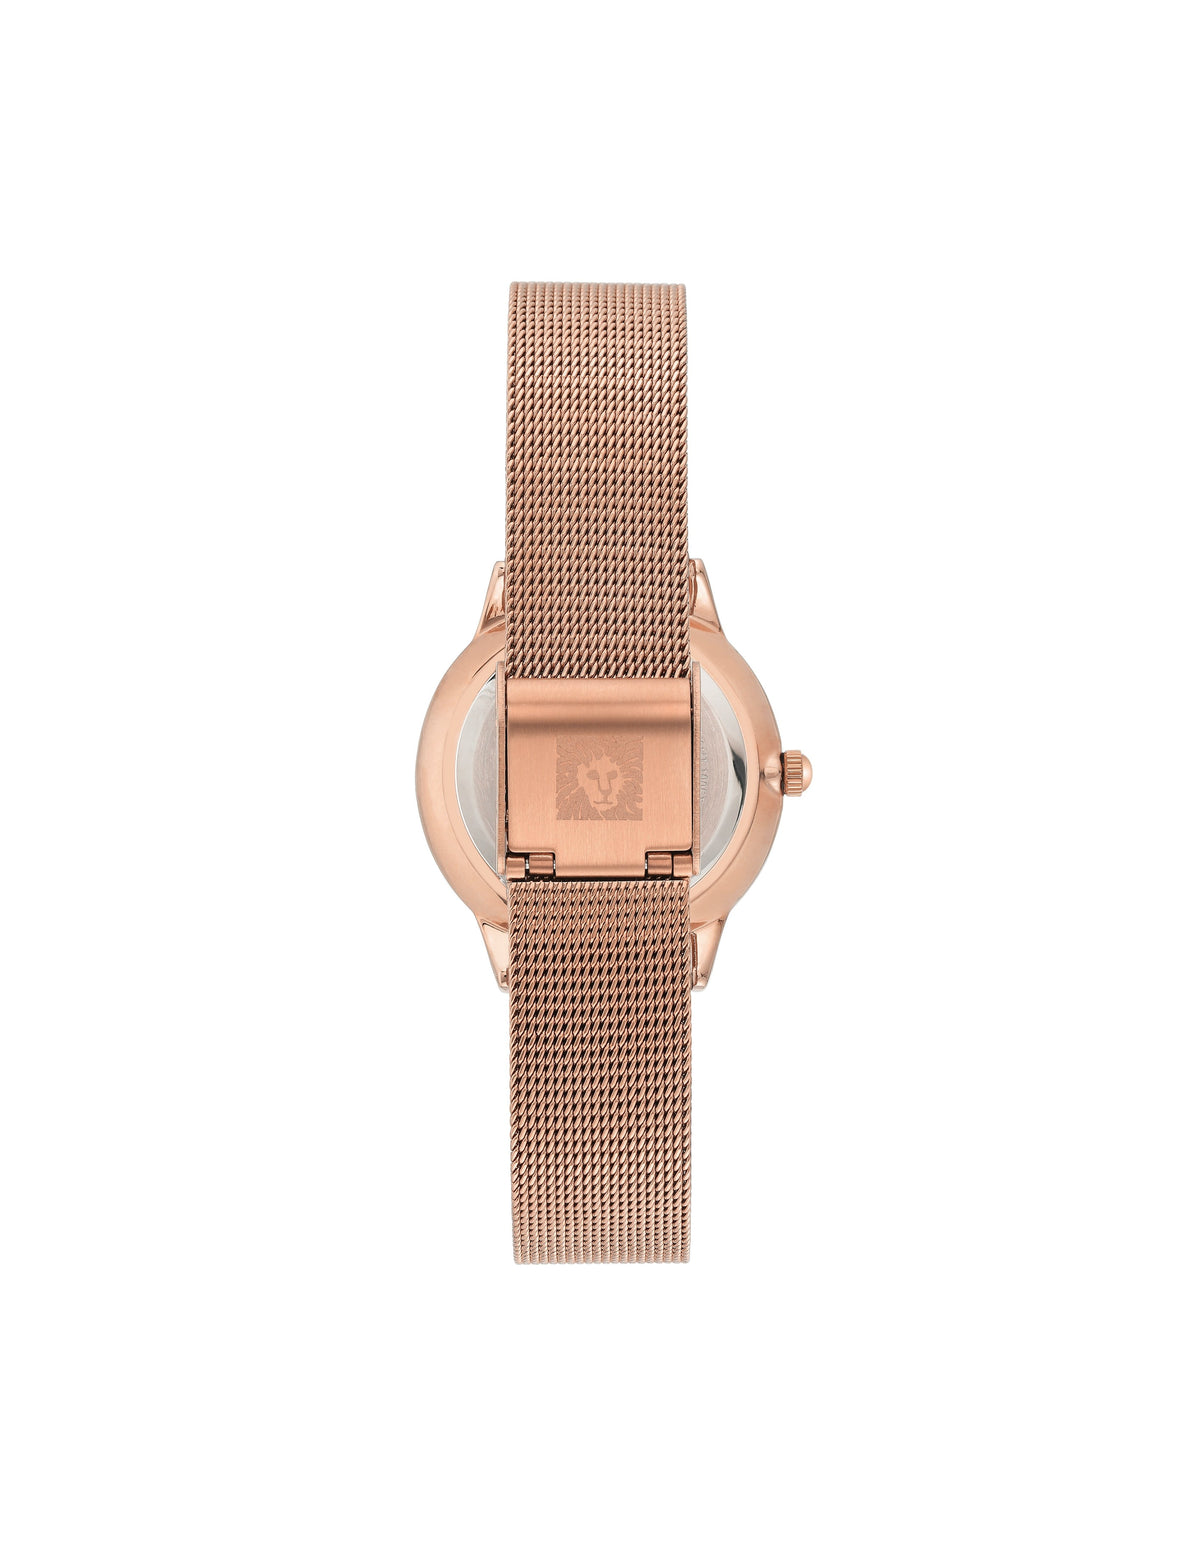 considered solar powered swarovski crystal accented rose gold green mesh bracelet watch